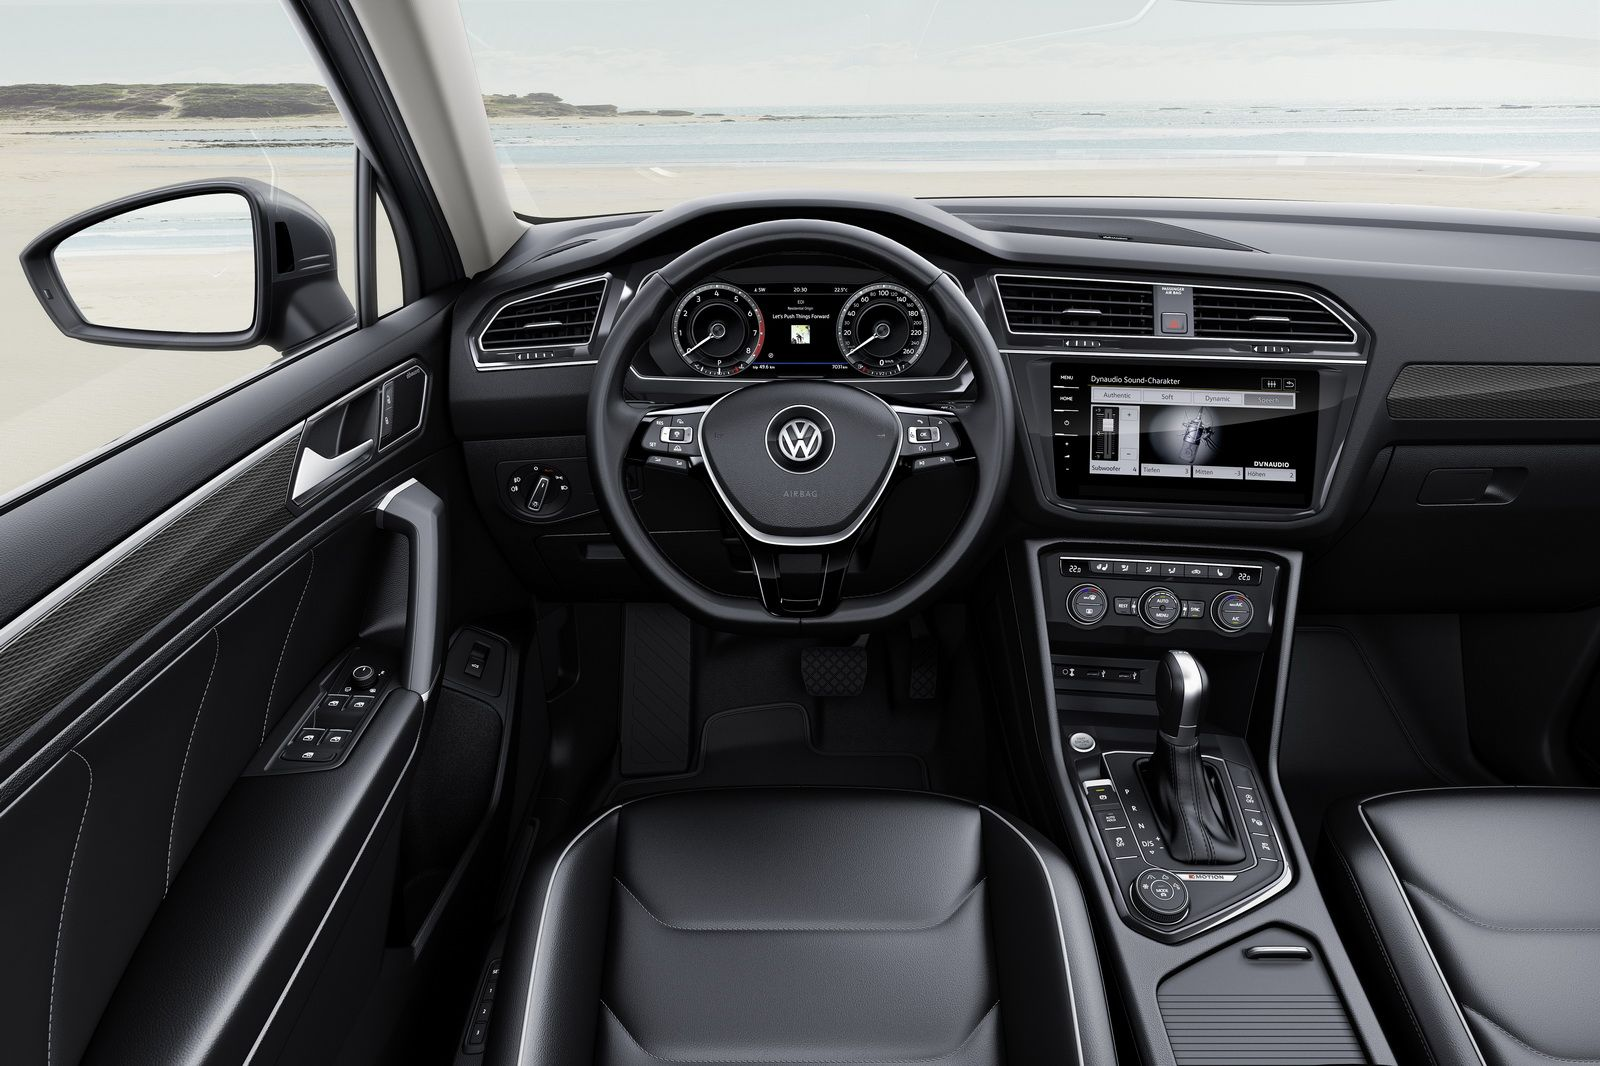 Europe S New Vw Tiguan Allspace With 7 Seats Detailed Ahead Of Geneva Carscoops Volkswagen Dream Cars Buick Regal Gs